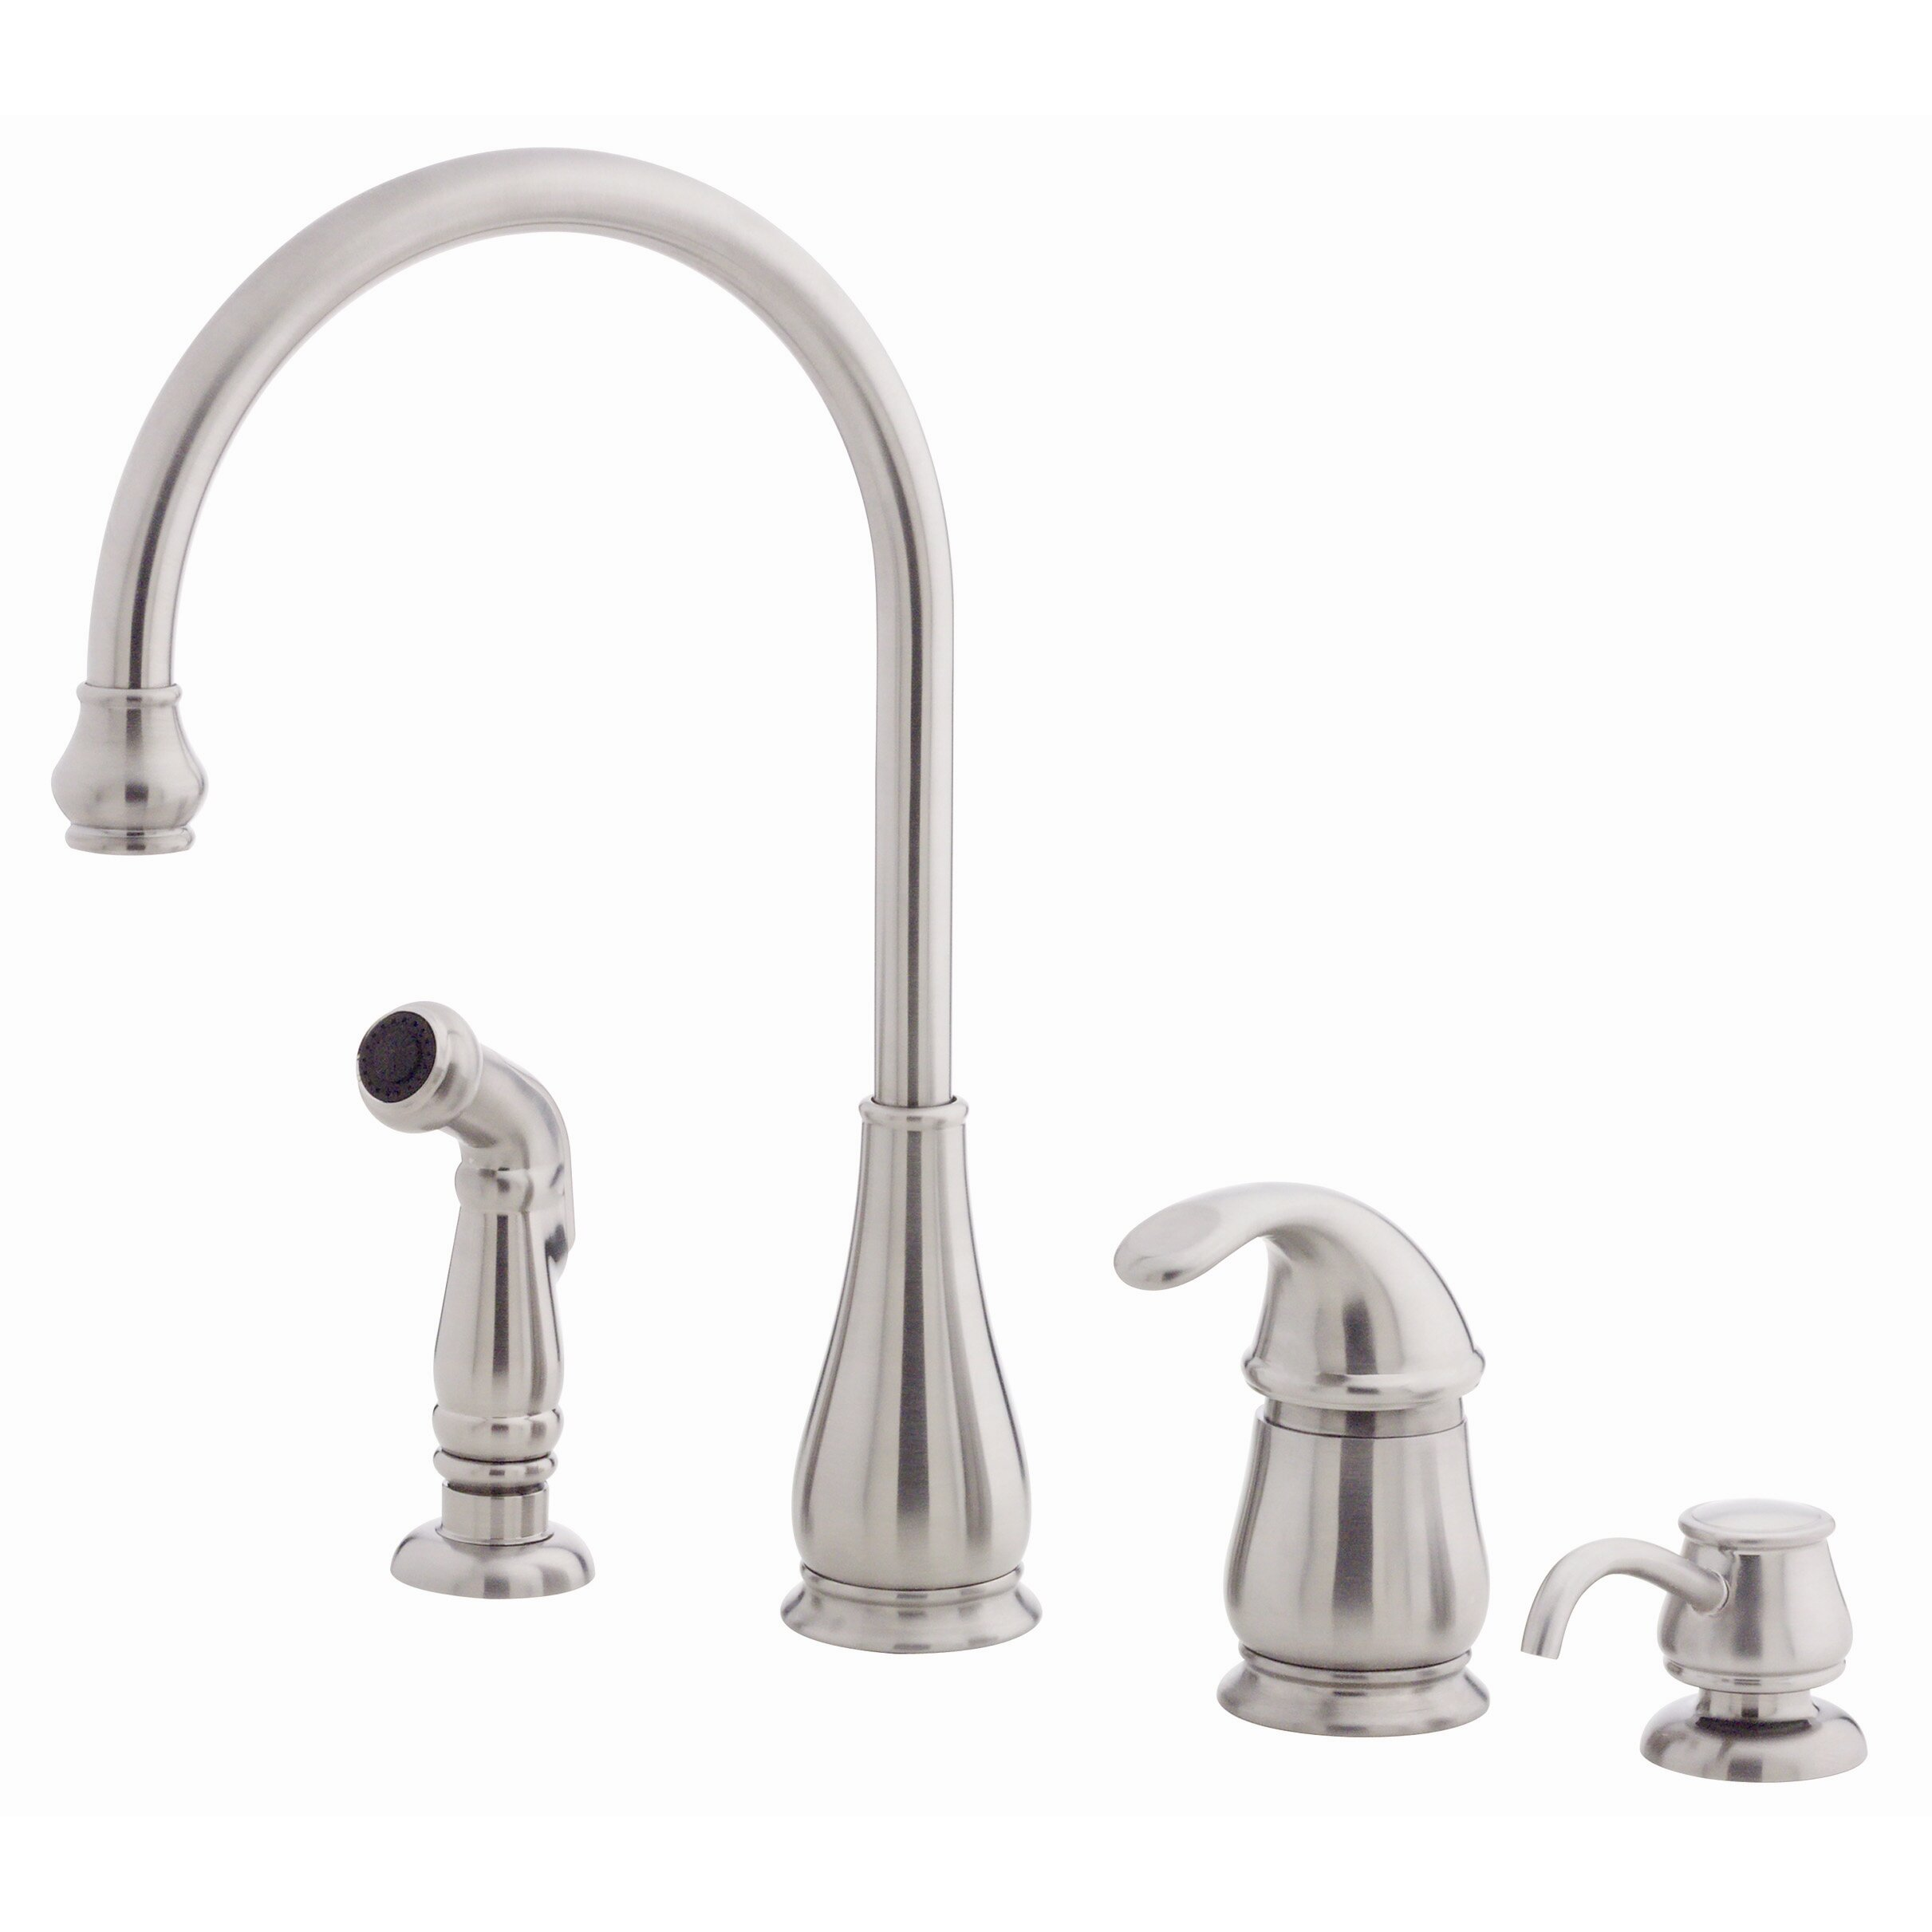 Treviso Single Handle Deck Mounted Kitchen Faucet With